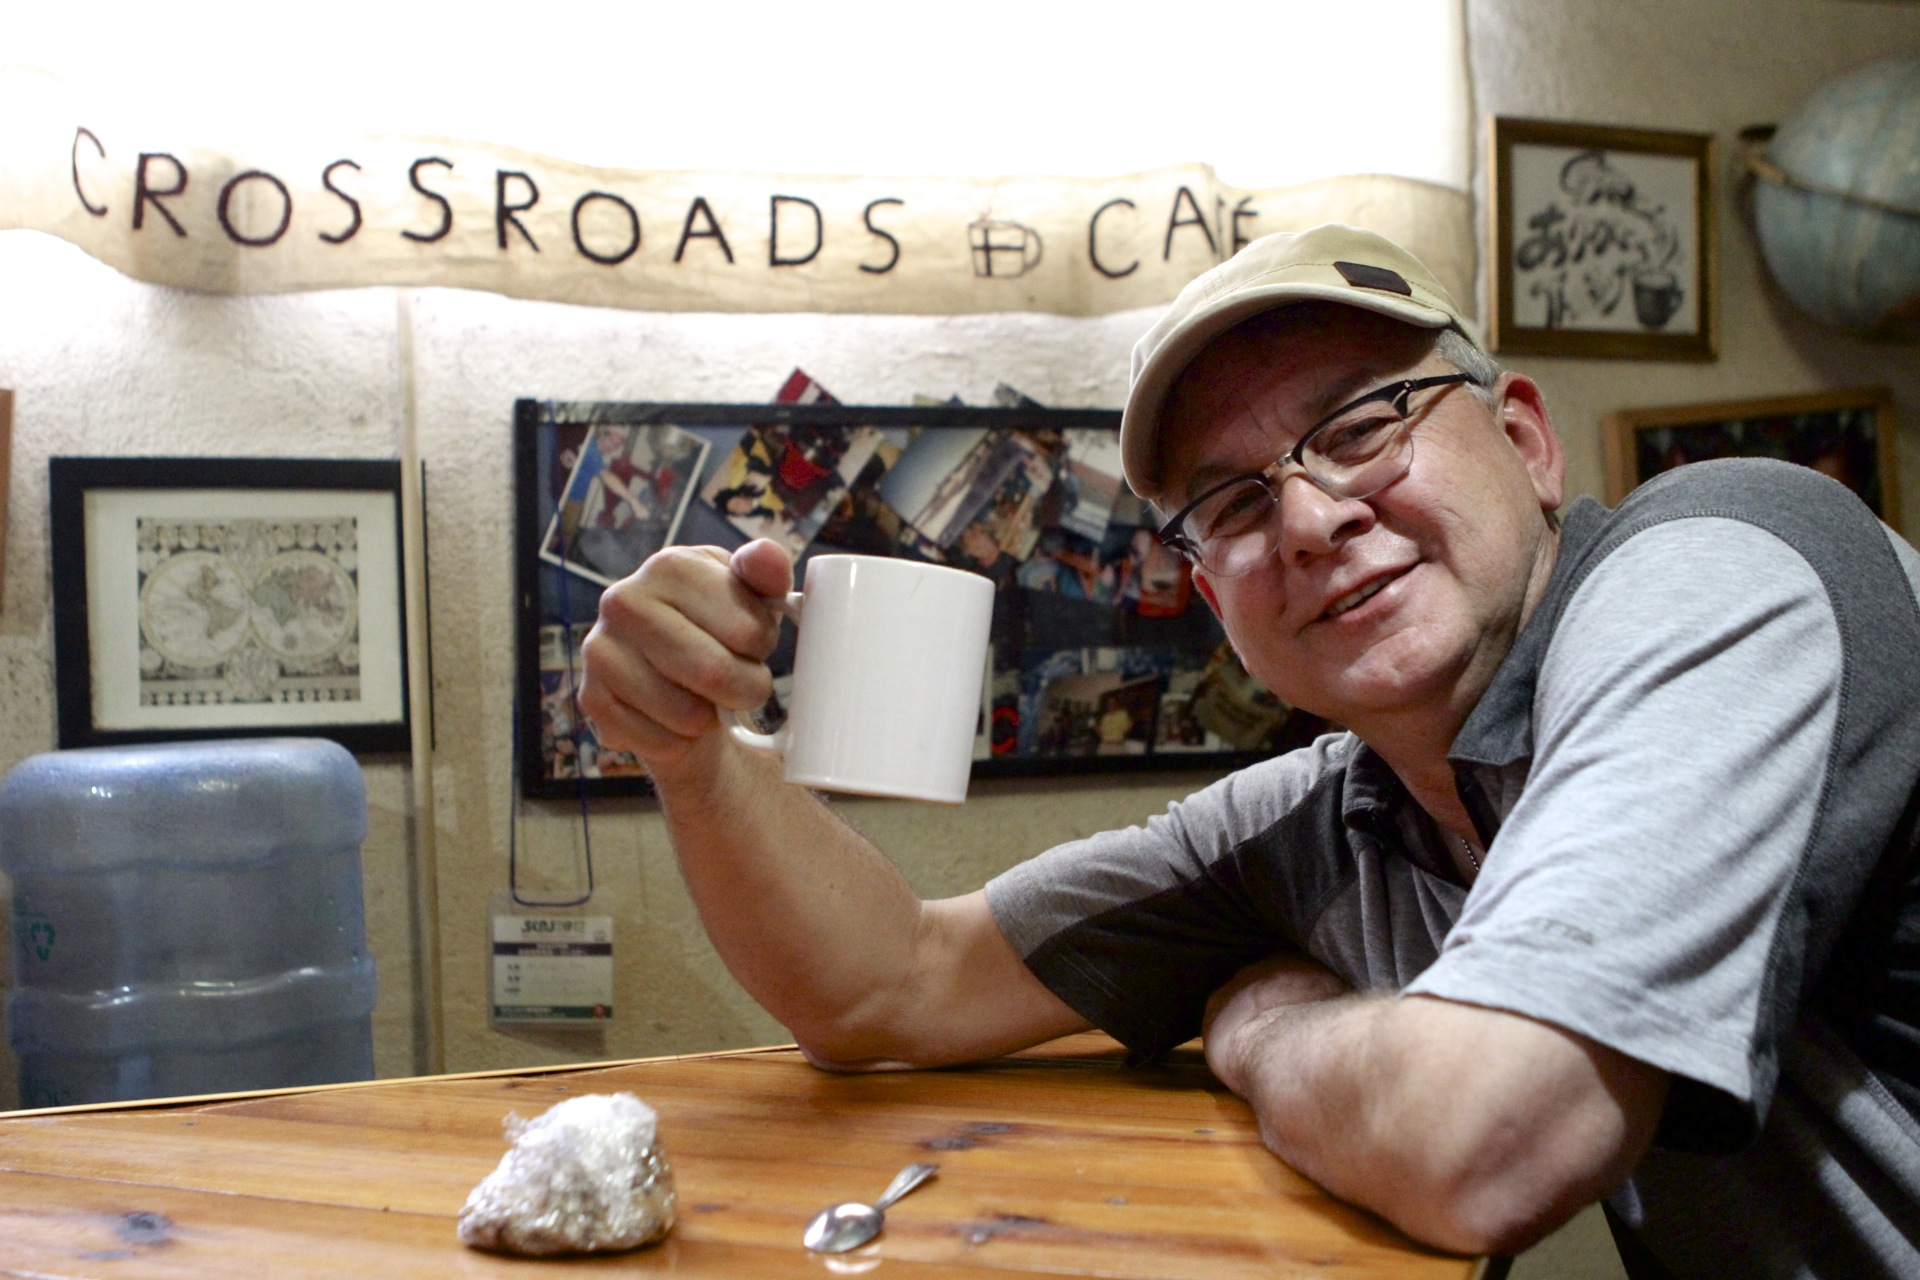 For Ron and many of us, Crossroads Cafe is an oasis of good coffee, where you can collect your thoughts, amidst the busy-ness of Panajachel.  Ron is an architectural designer back in Canada, a longtime board member, and a frequent flyer to Guatemala.